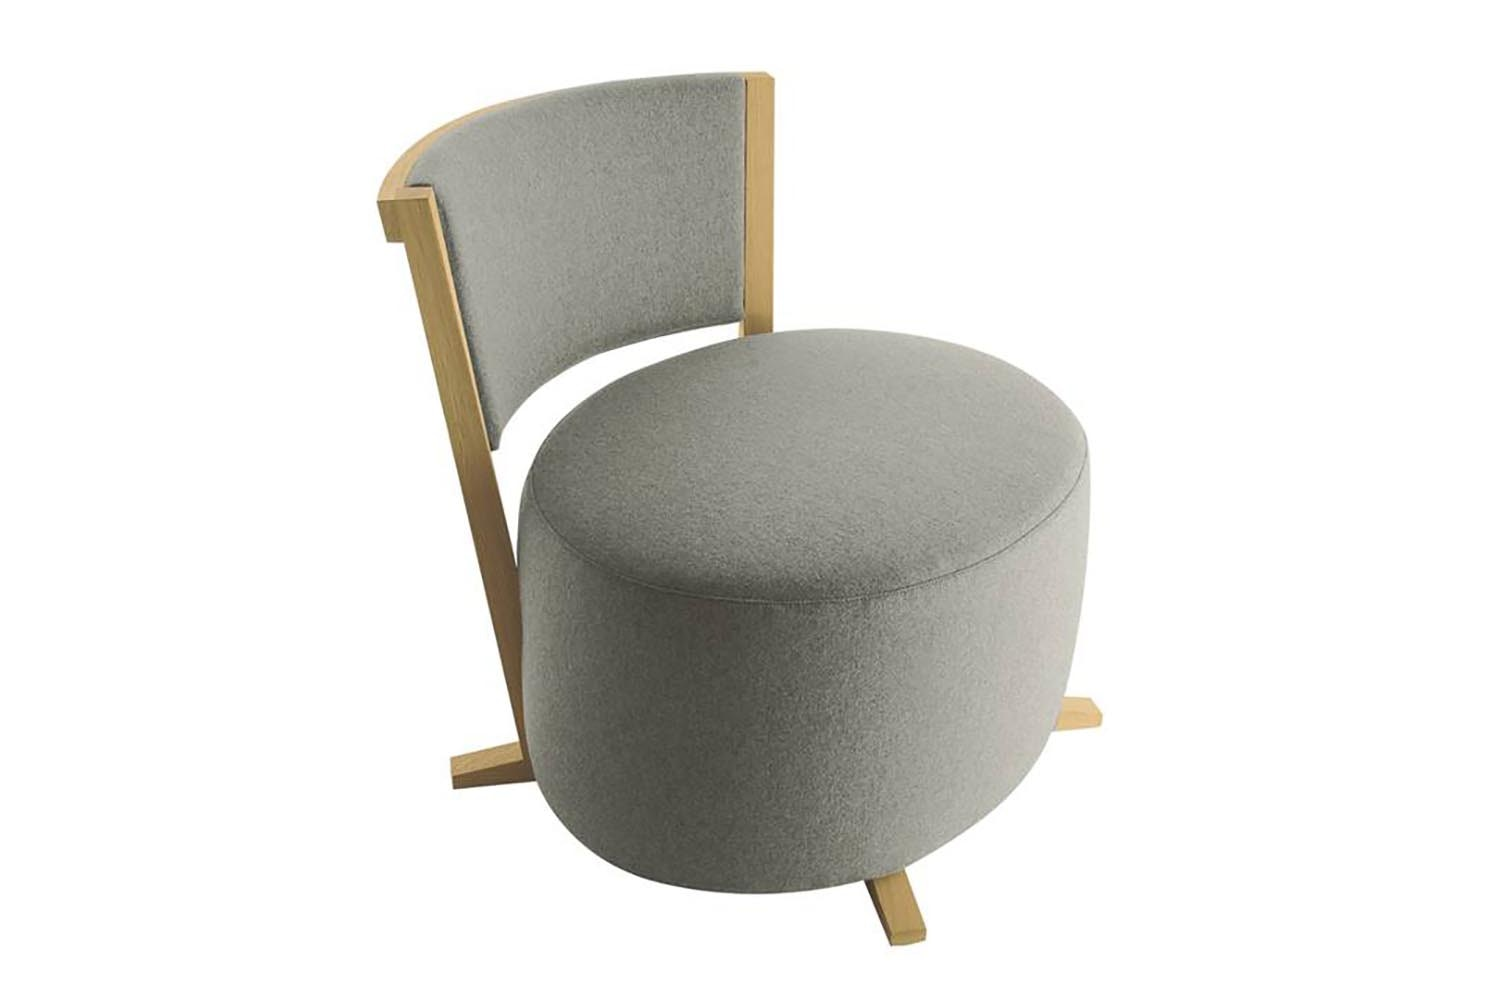 Calliope Armchair by Antonio Citterio for Maxalto